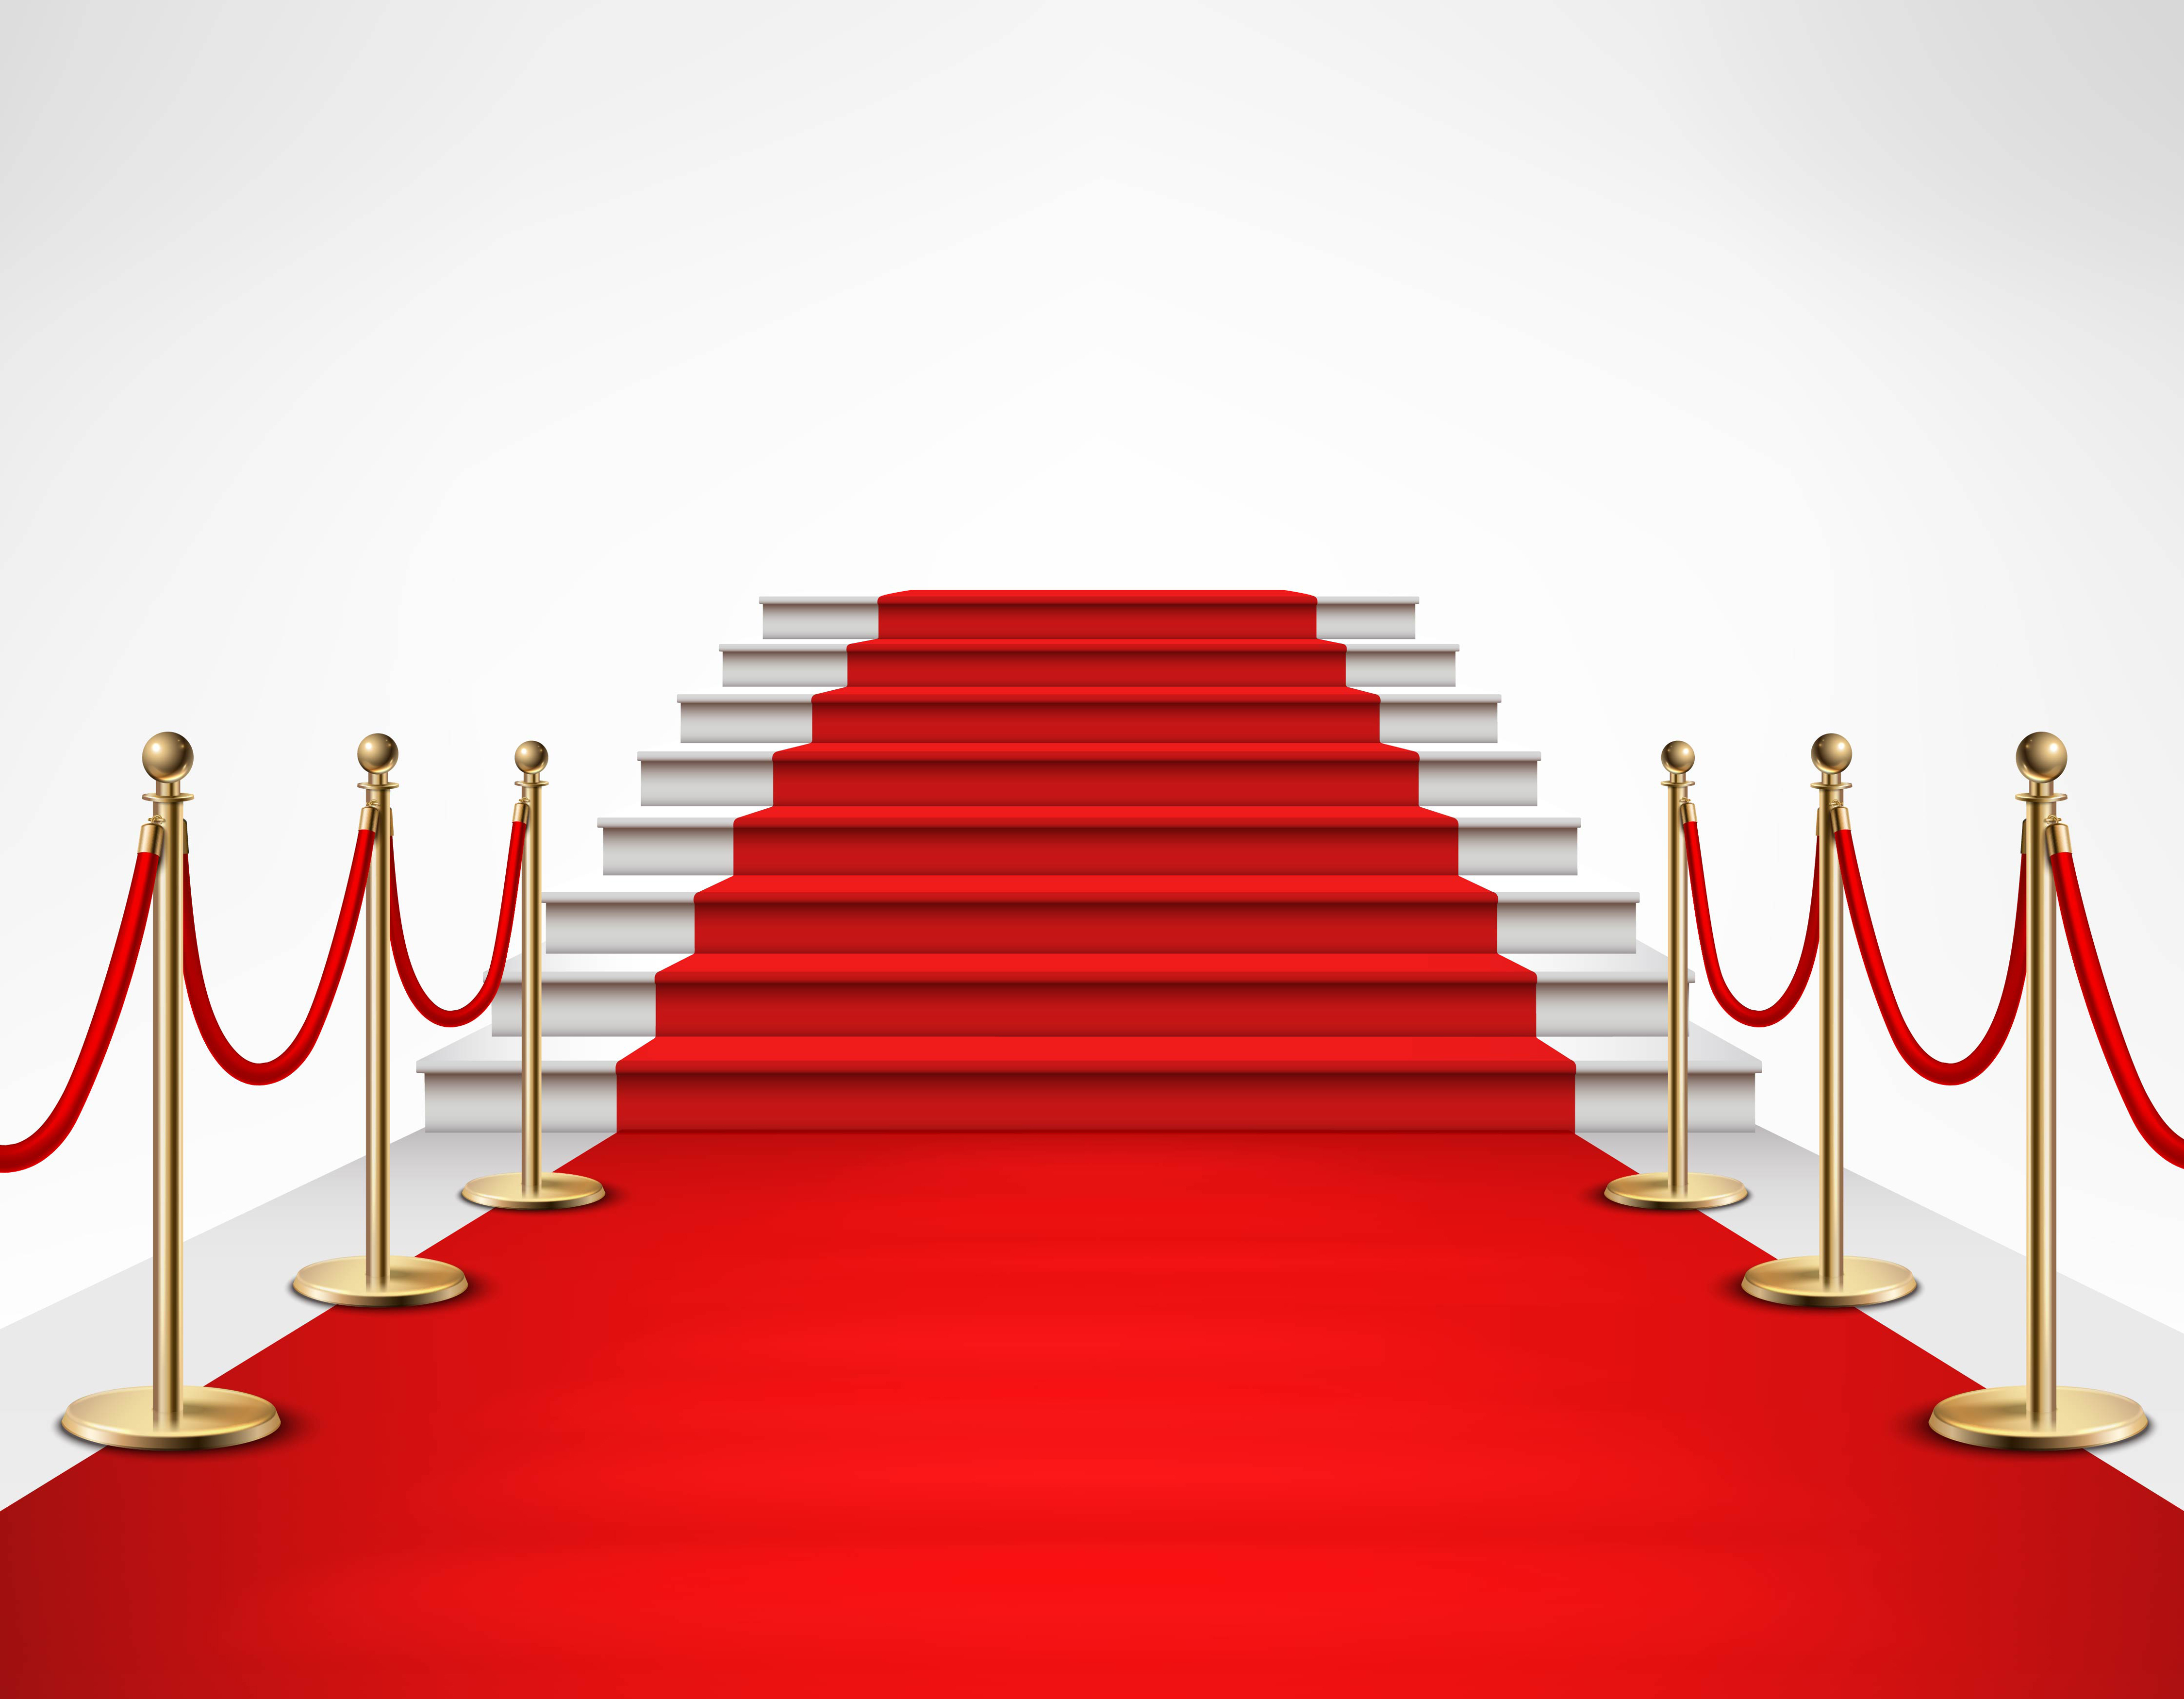 Red Carpet White Stairs Realistic Illustration Download